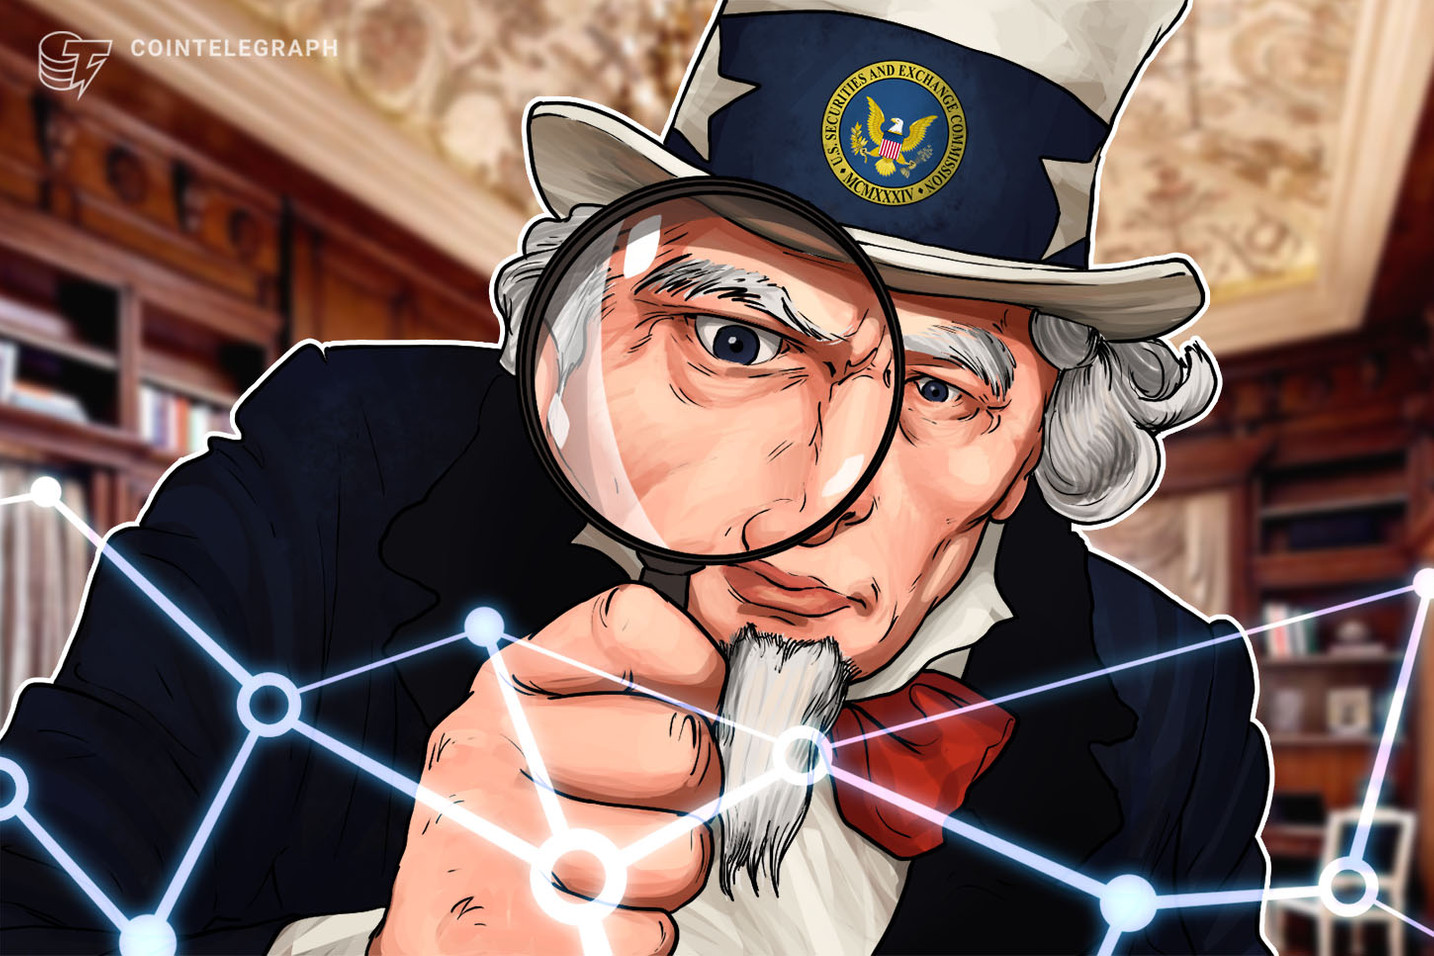 New Report Reviews Blockchain Applications by US Federal Government